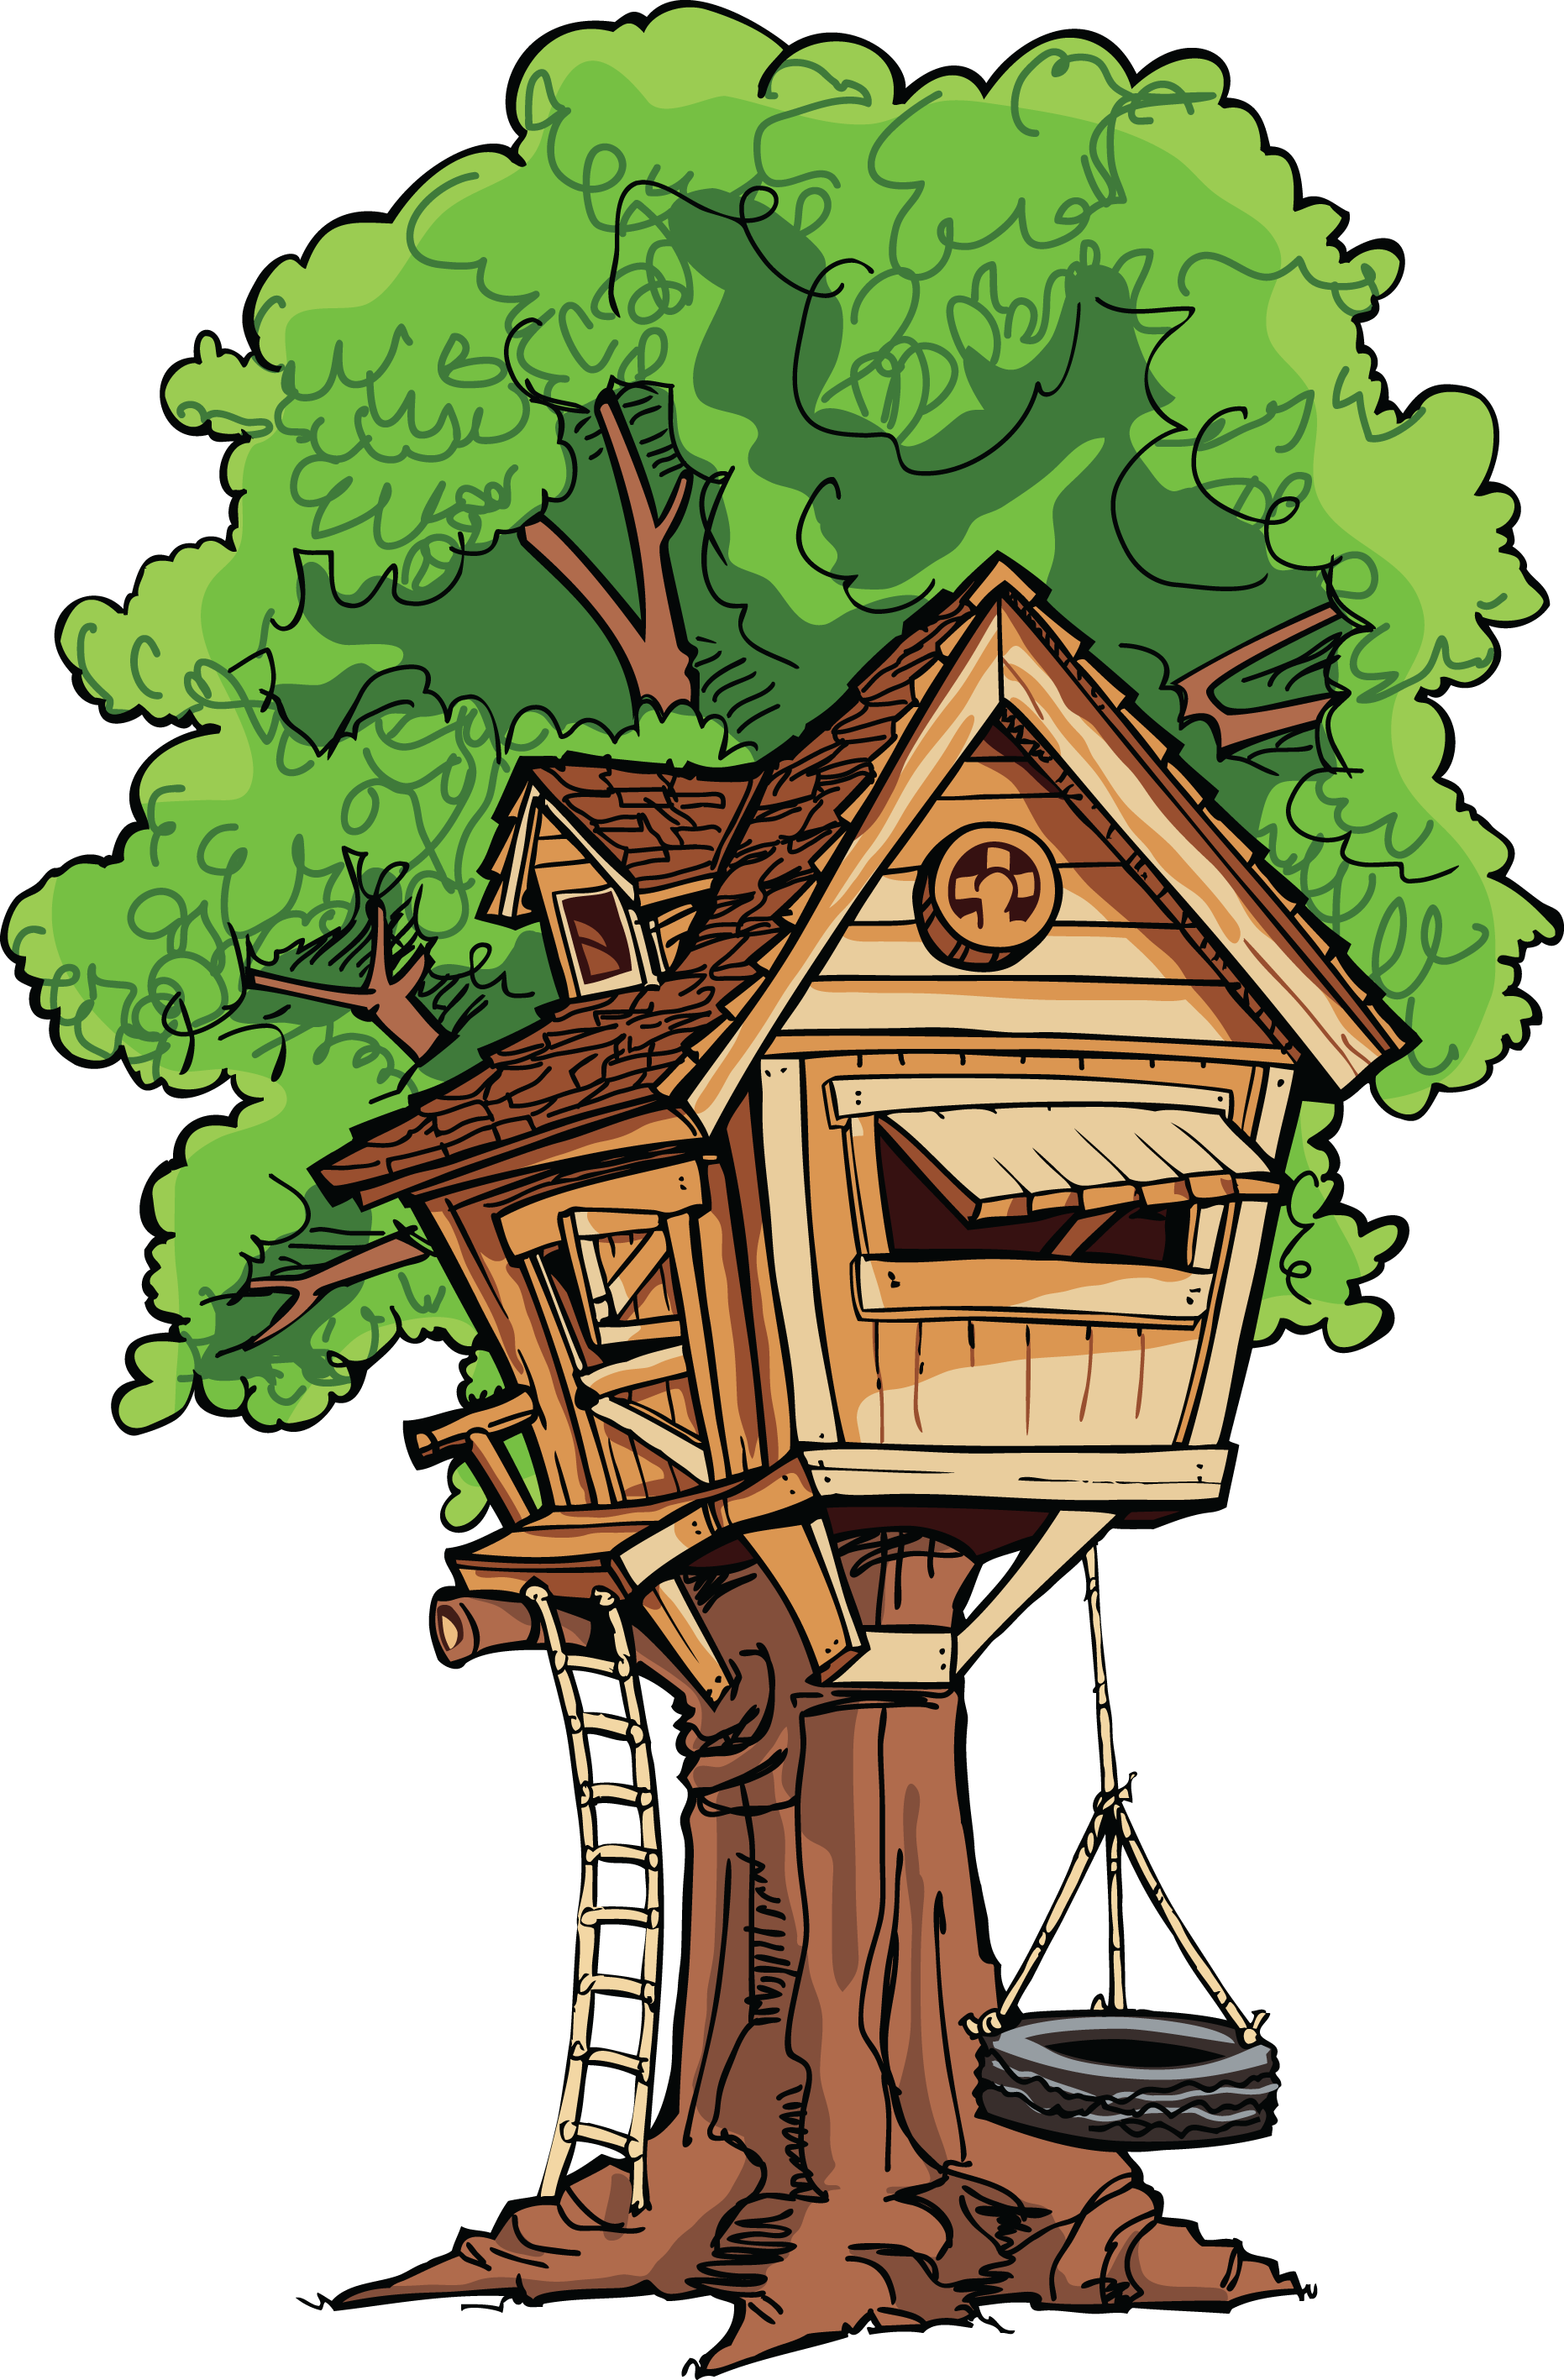 House architectural styles clipart clipart library library Tree House Clip Art | When you go into the creative world you have ... clipart library library